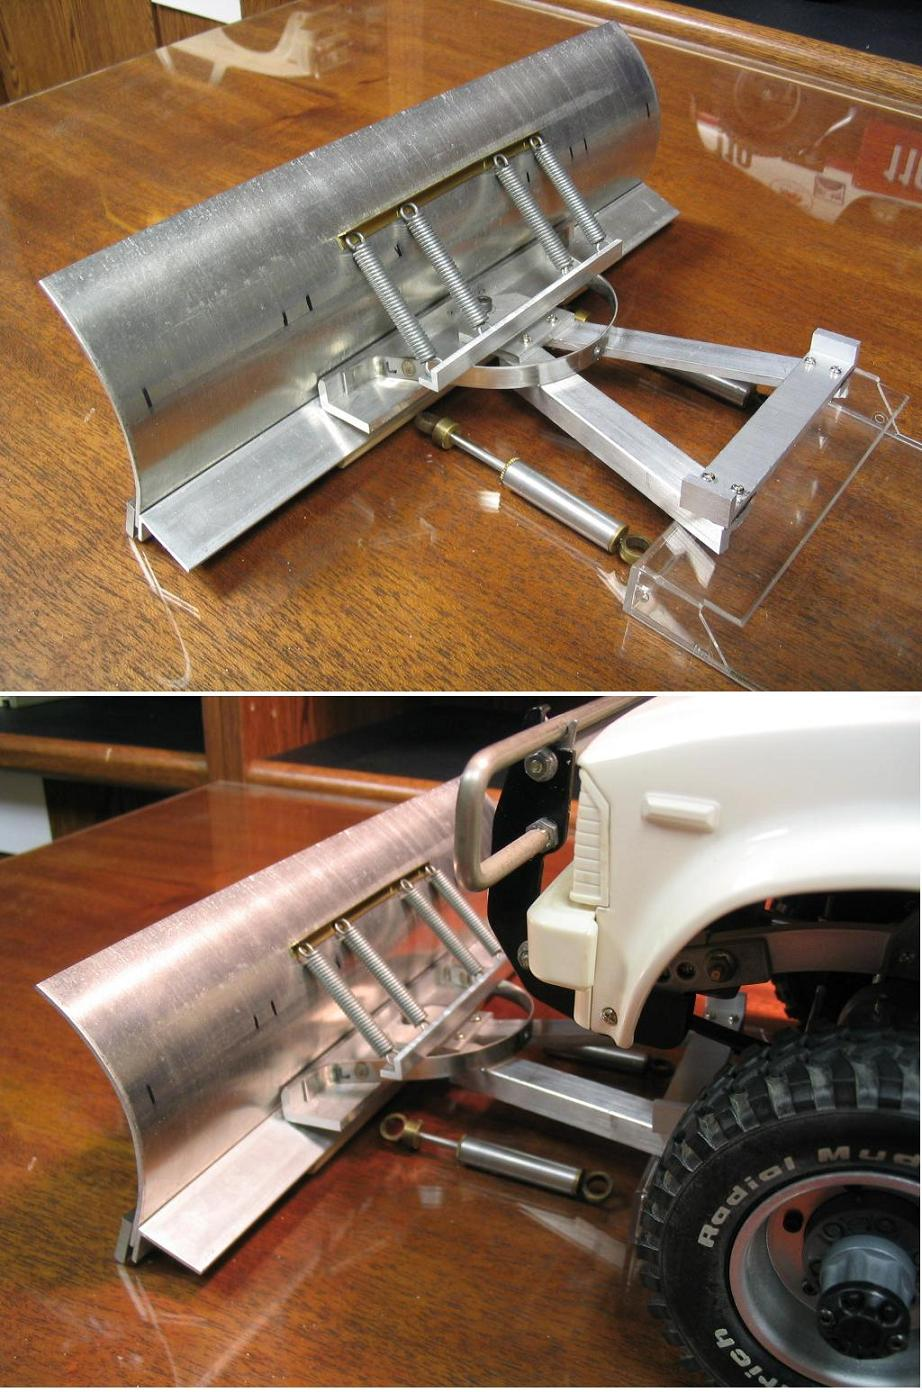 Press Release 42 Jeep Wrangler Yj 2 Suspension Lift likewise Rear Leaf Spring Mount Section Art 103 L in addition 936614 Curb Weight Of 1954 F100 in addition Showthread moreover Main. on chevy truck frame dimensions